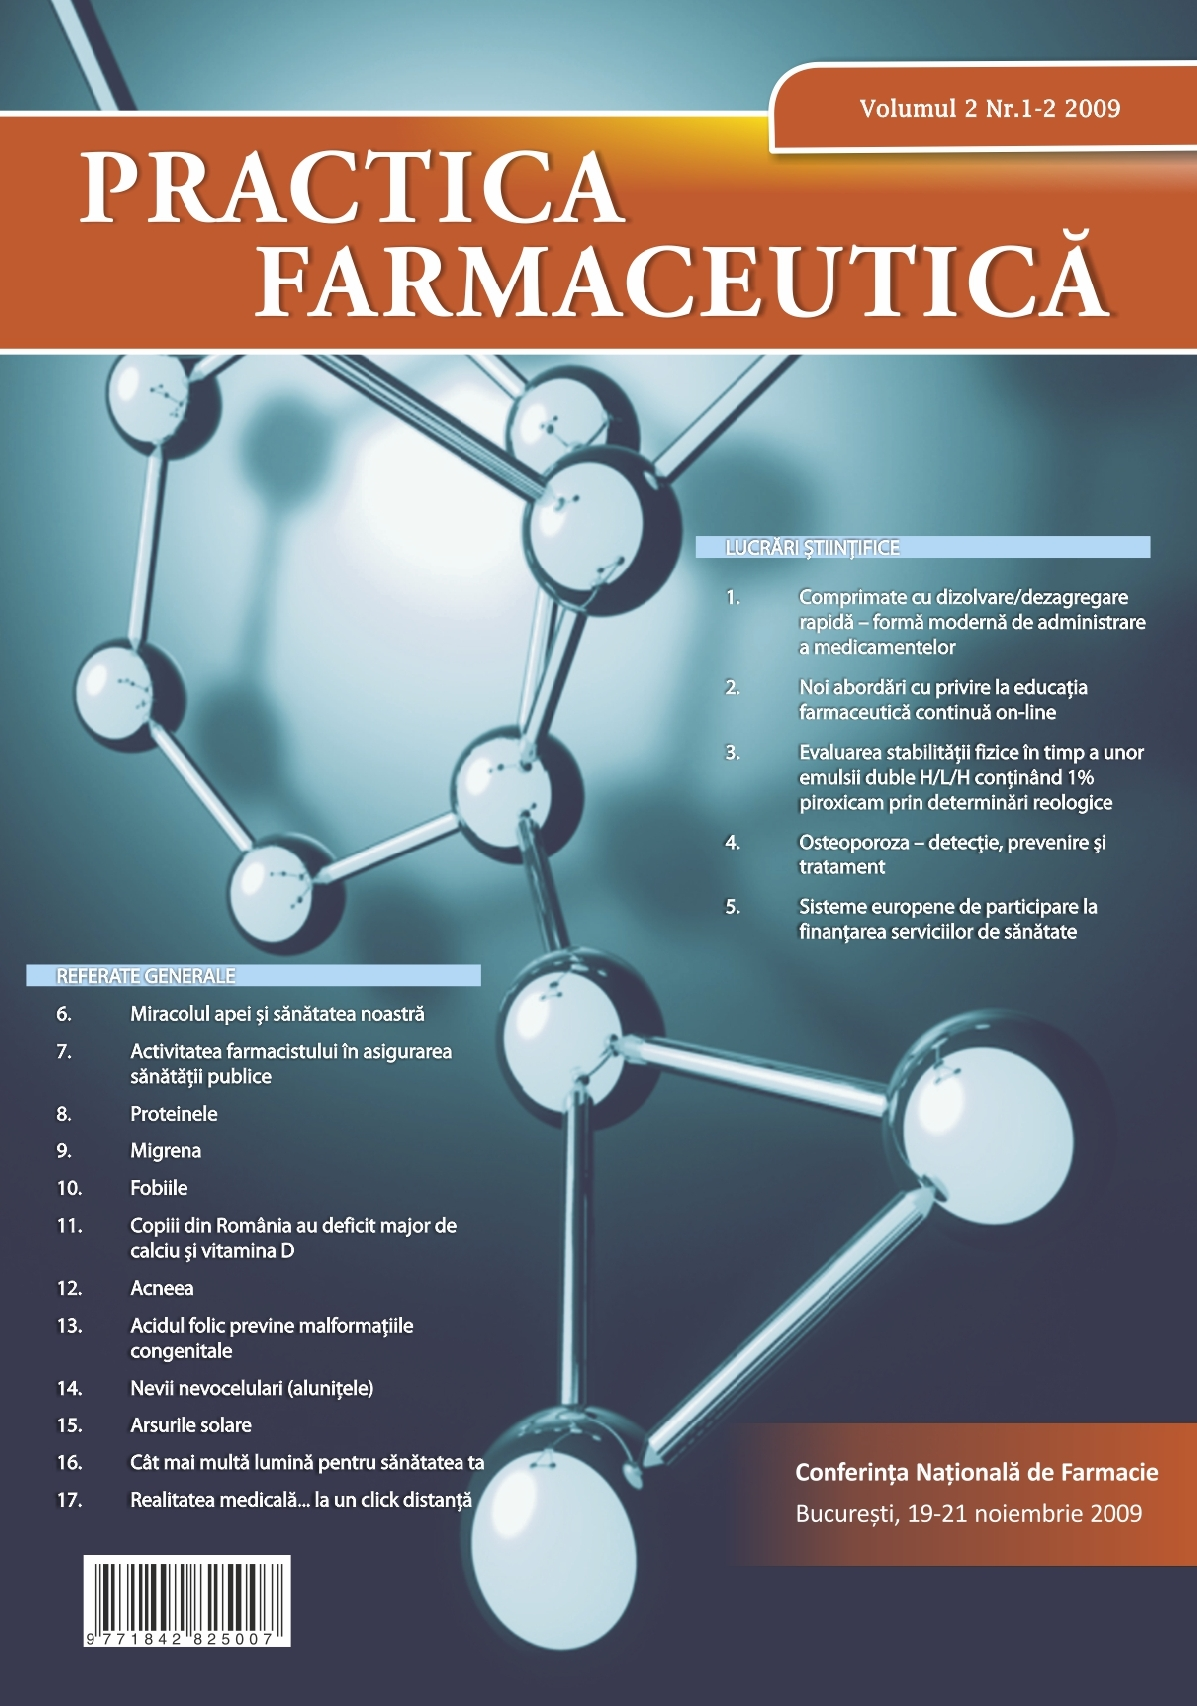 Revista Practica Farmaceutica, Vol. II, No. 1-2, 2009